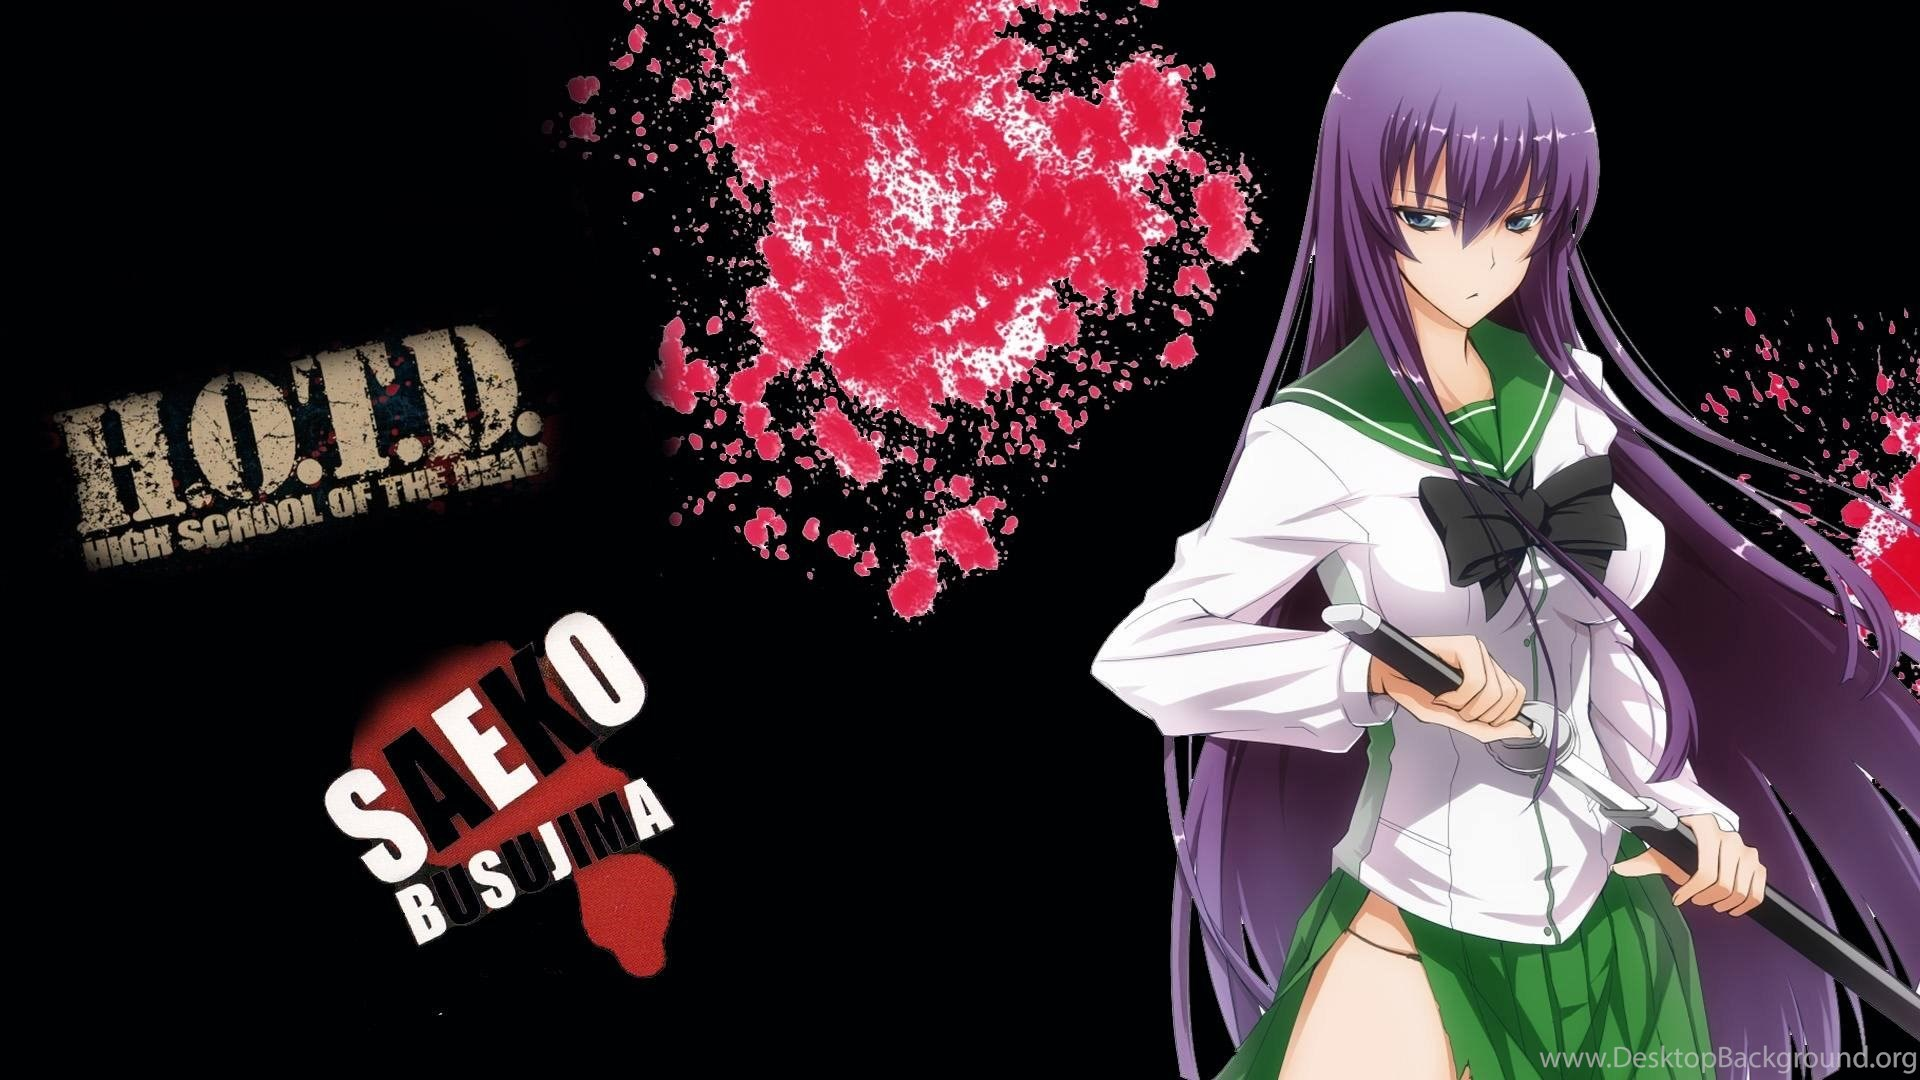 Saeko Busujima Highschool Of The Dead Wallpaper Desktop Background